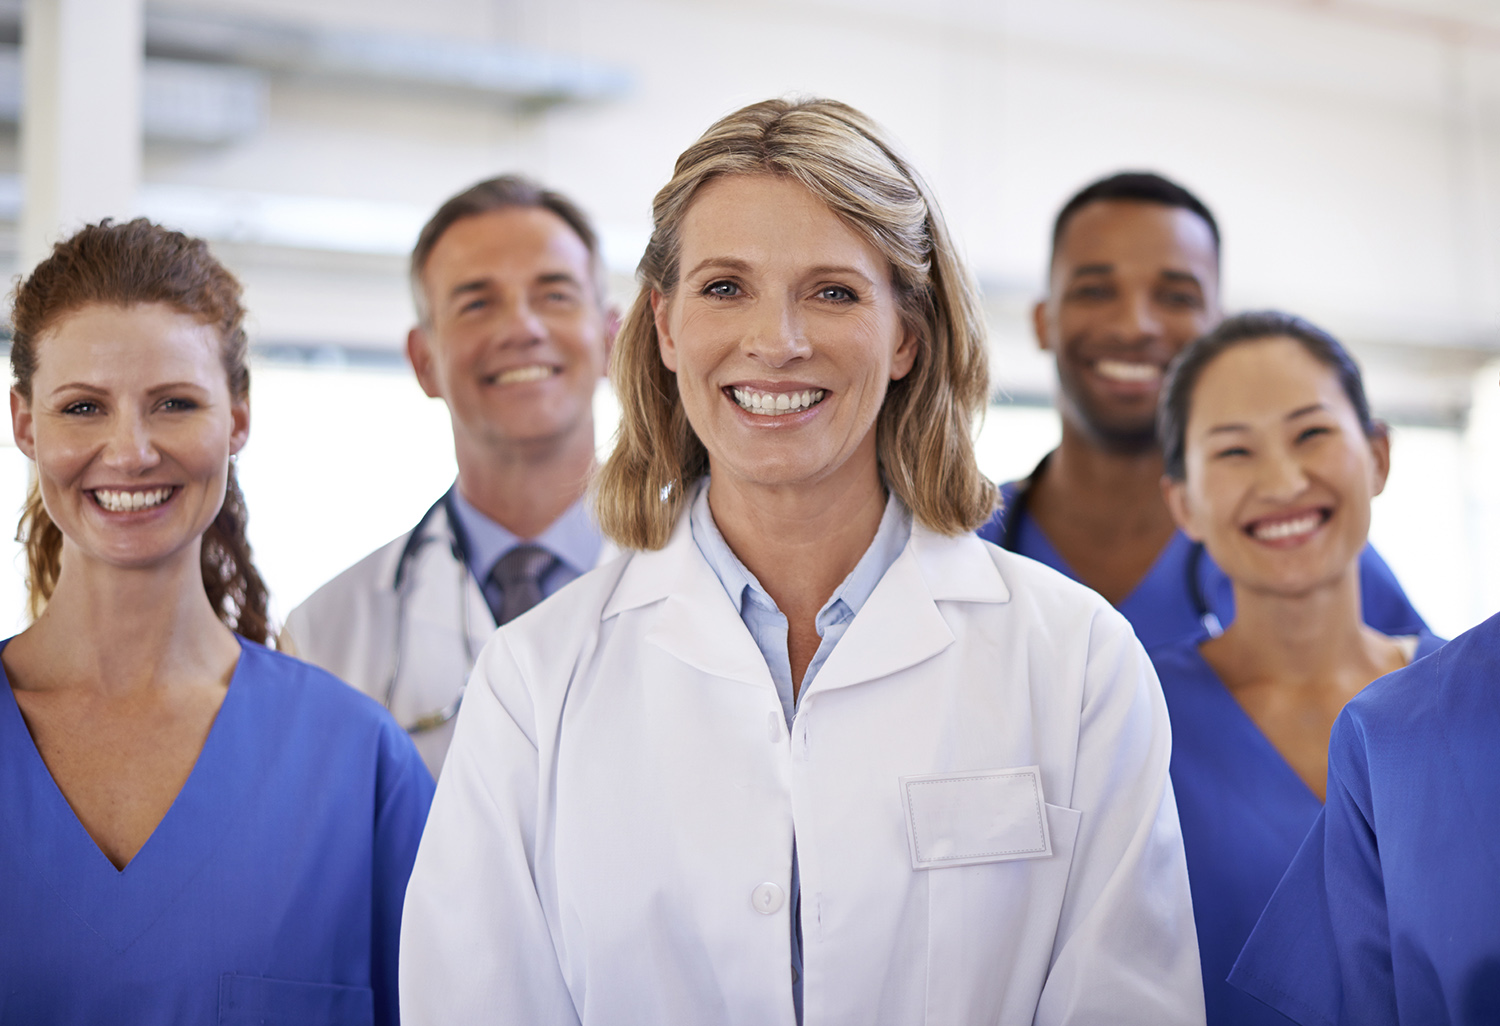 Portrait of a diverse team of medical professionals